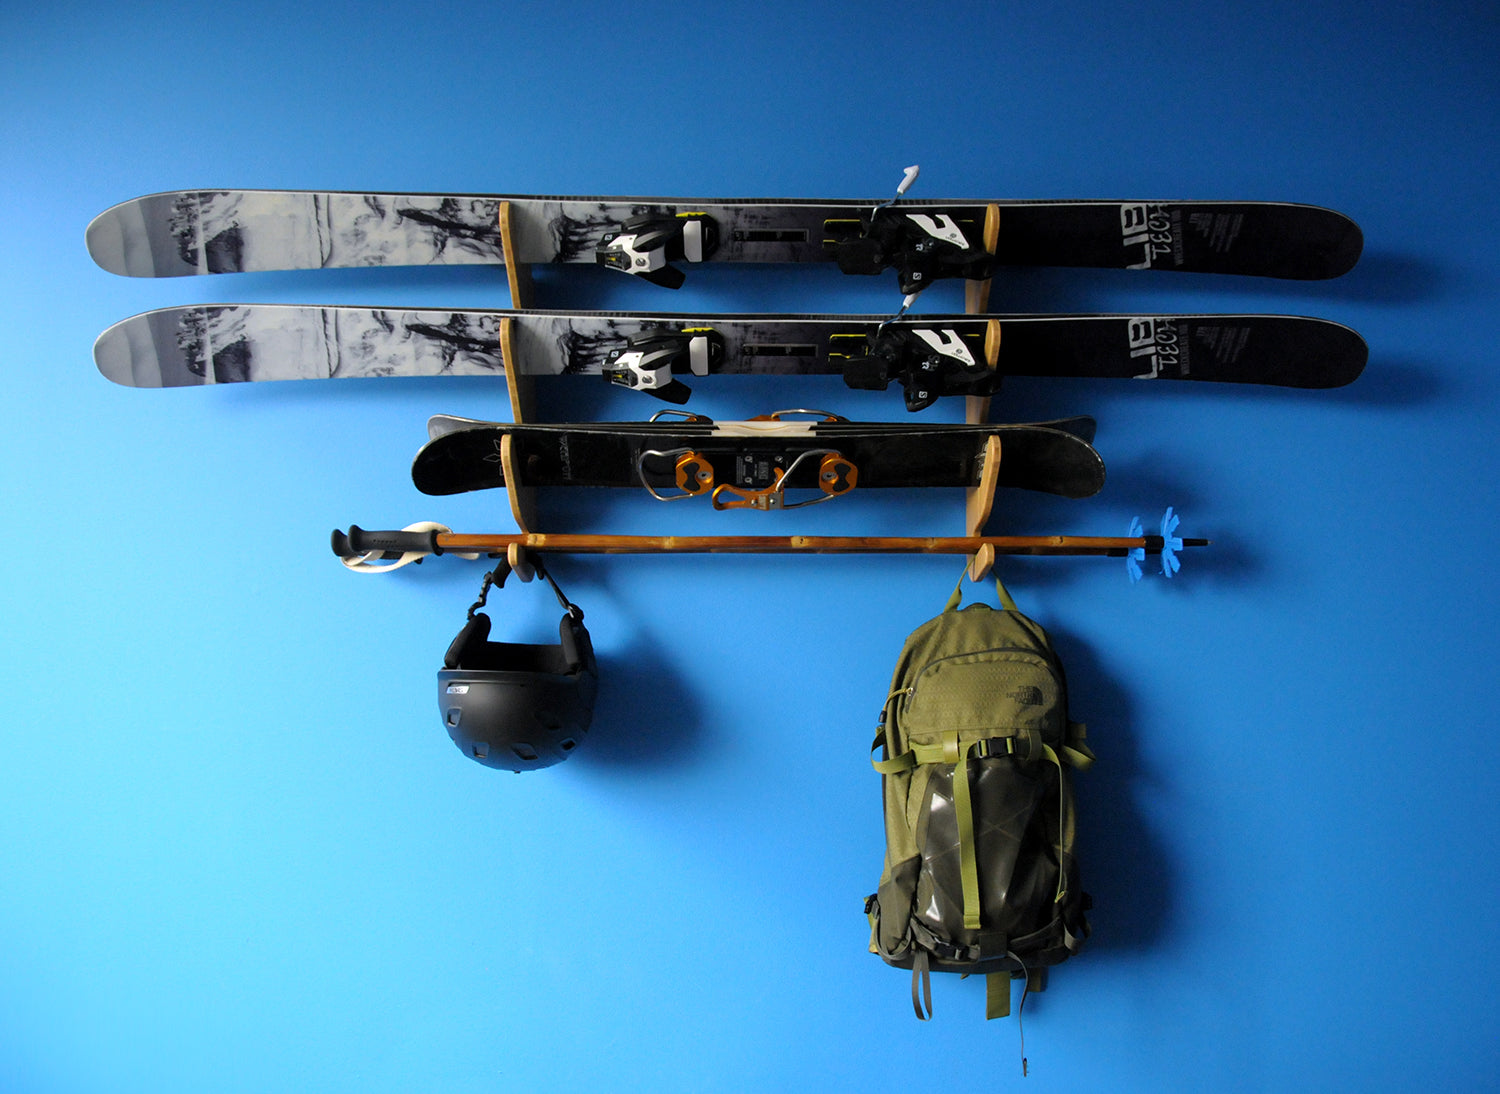 In-Home Ski Storage - Bamboo Ski Rack - LibTech Wreckreate 100 and Line Skis